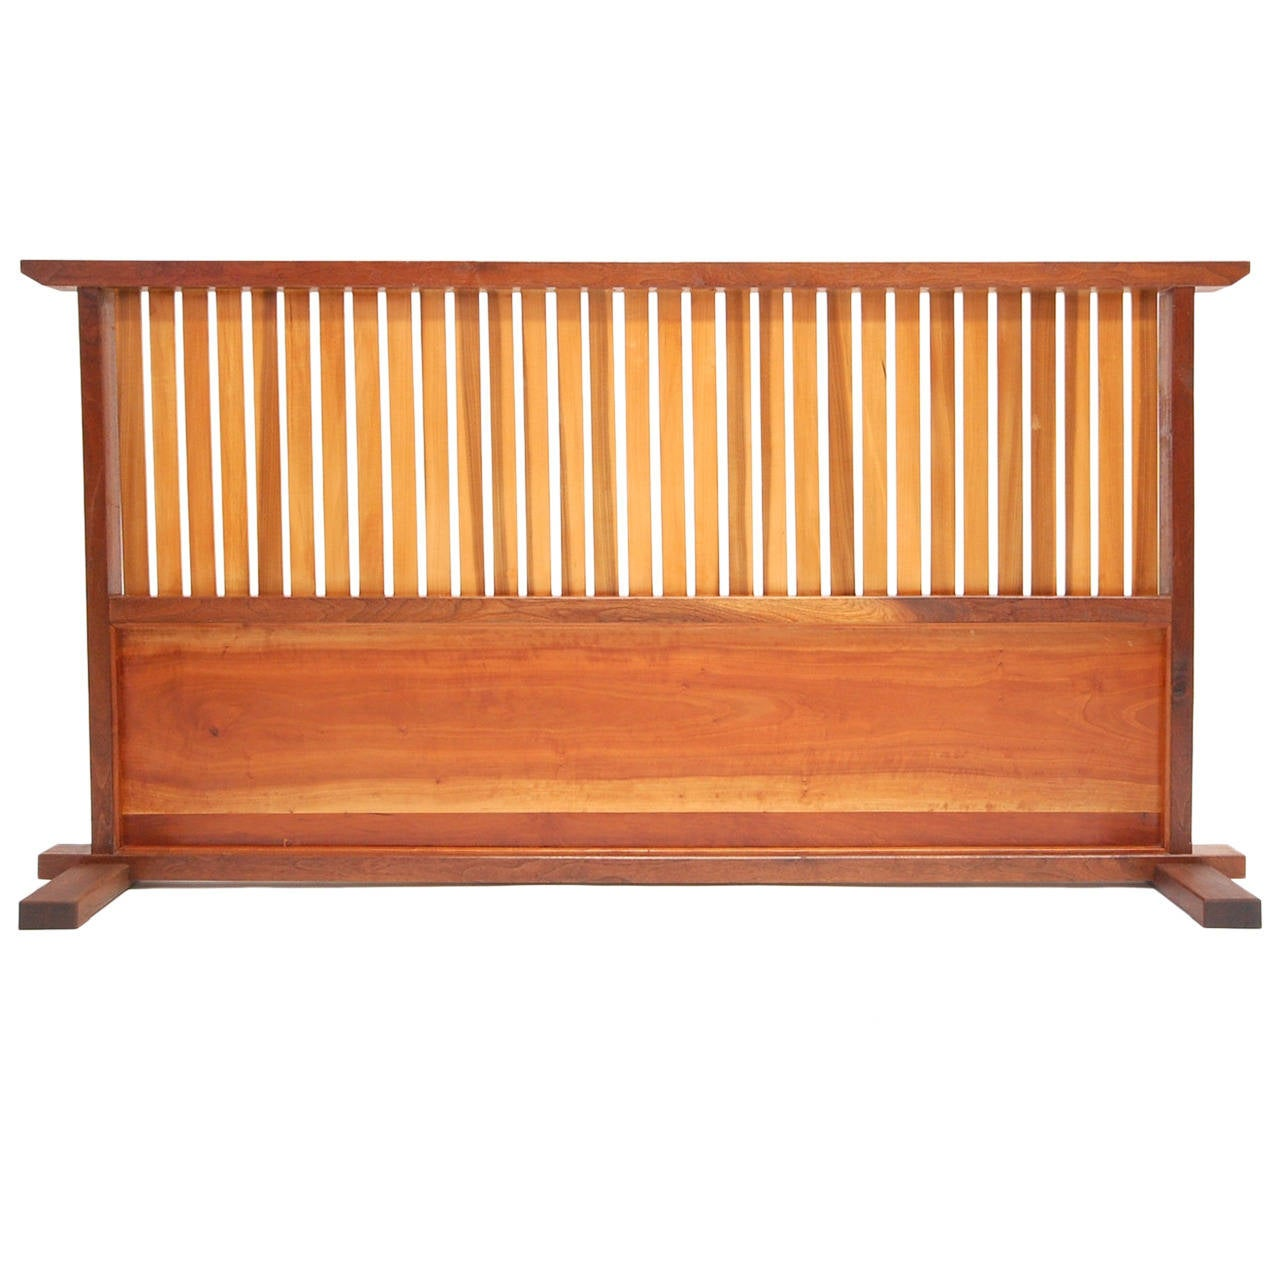 Small japanese style room divider by teruo hara at 1stdibs for Small room divider